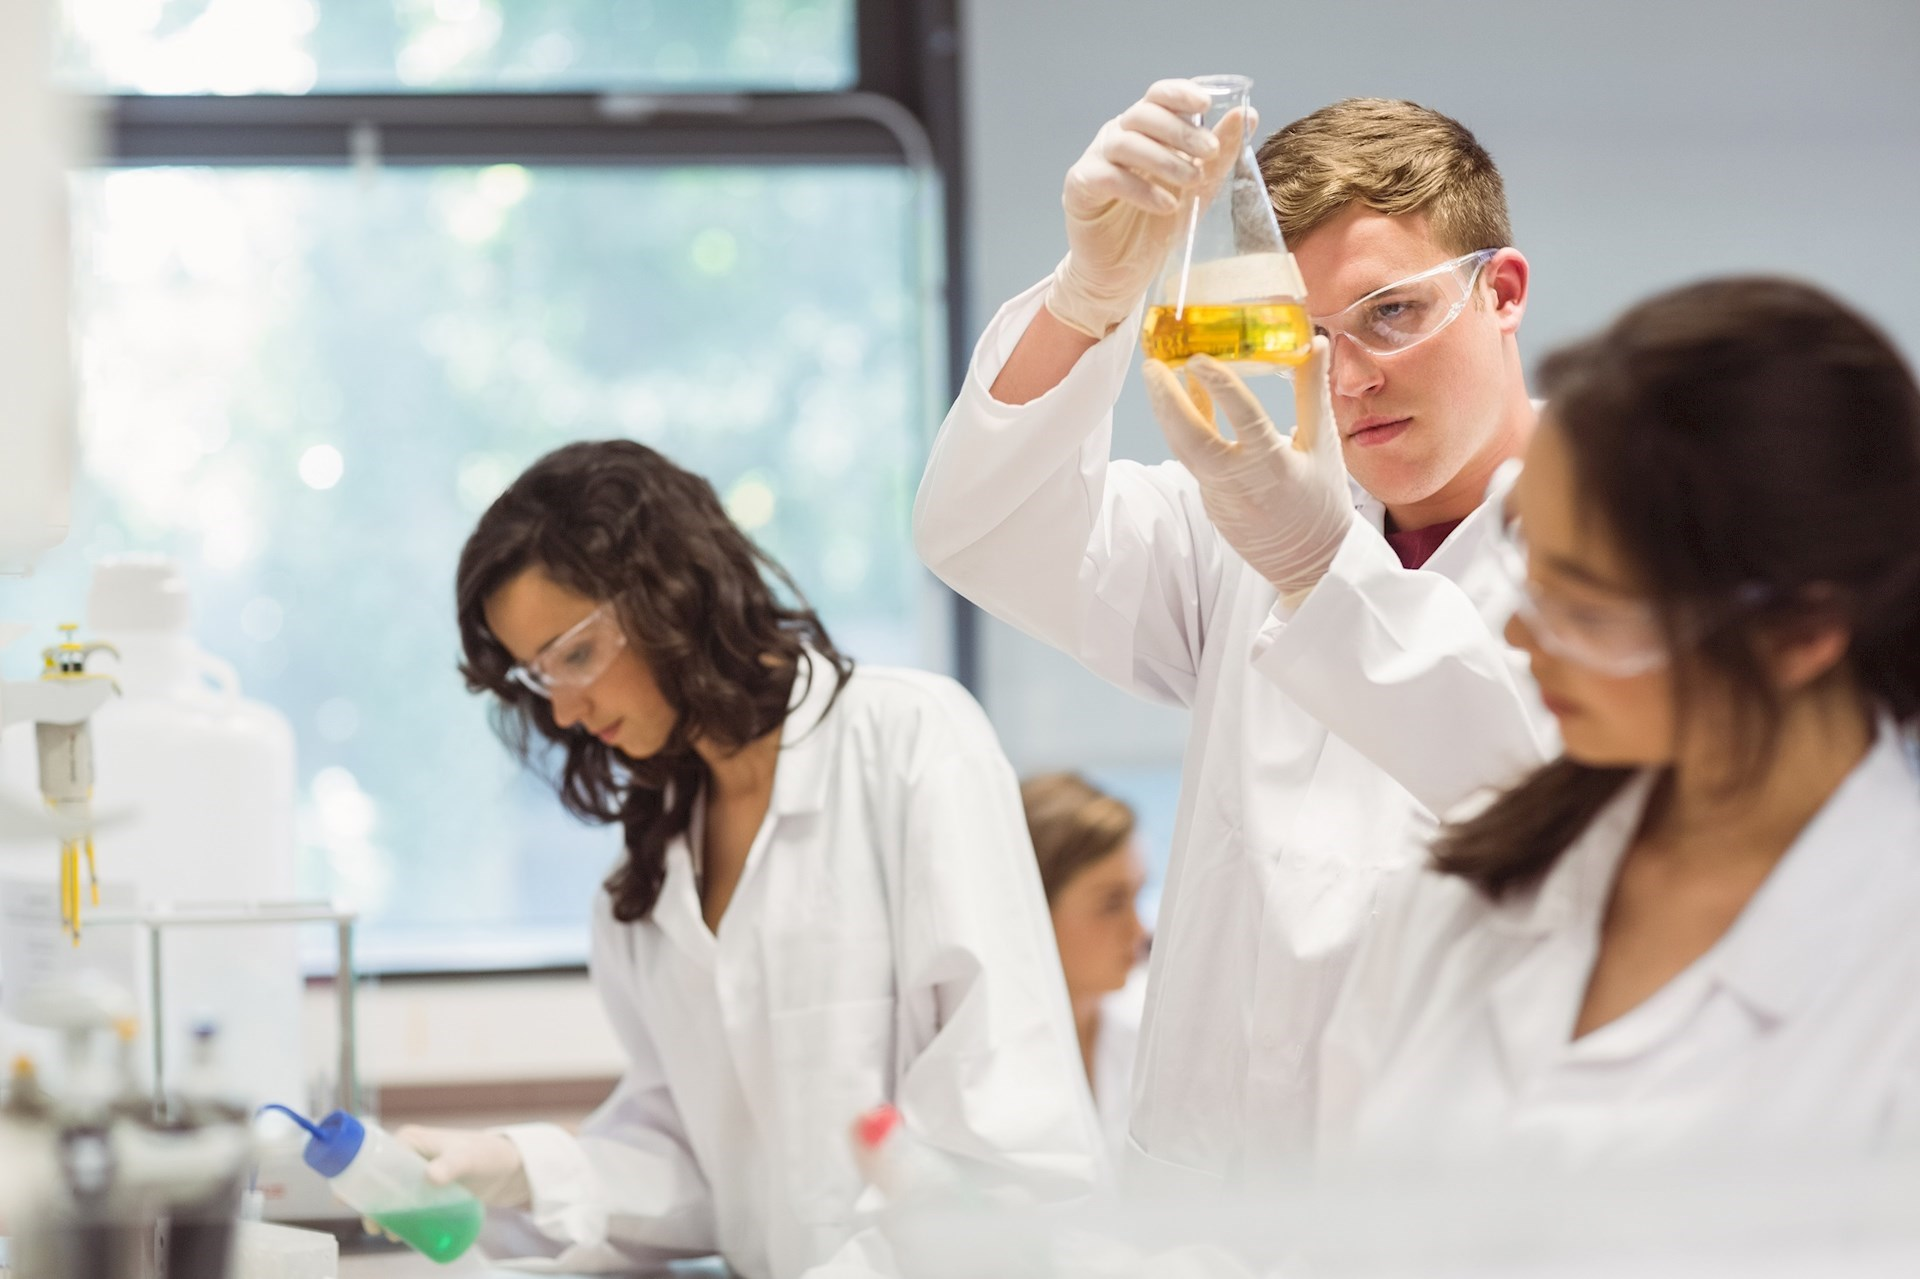 10 Academic Summer Camps for High School Students Interested in Science